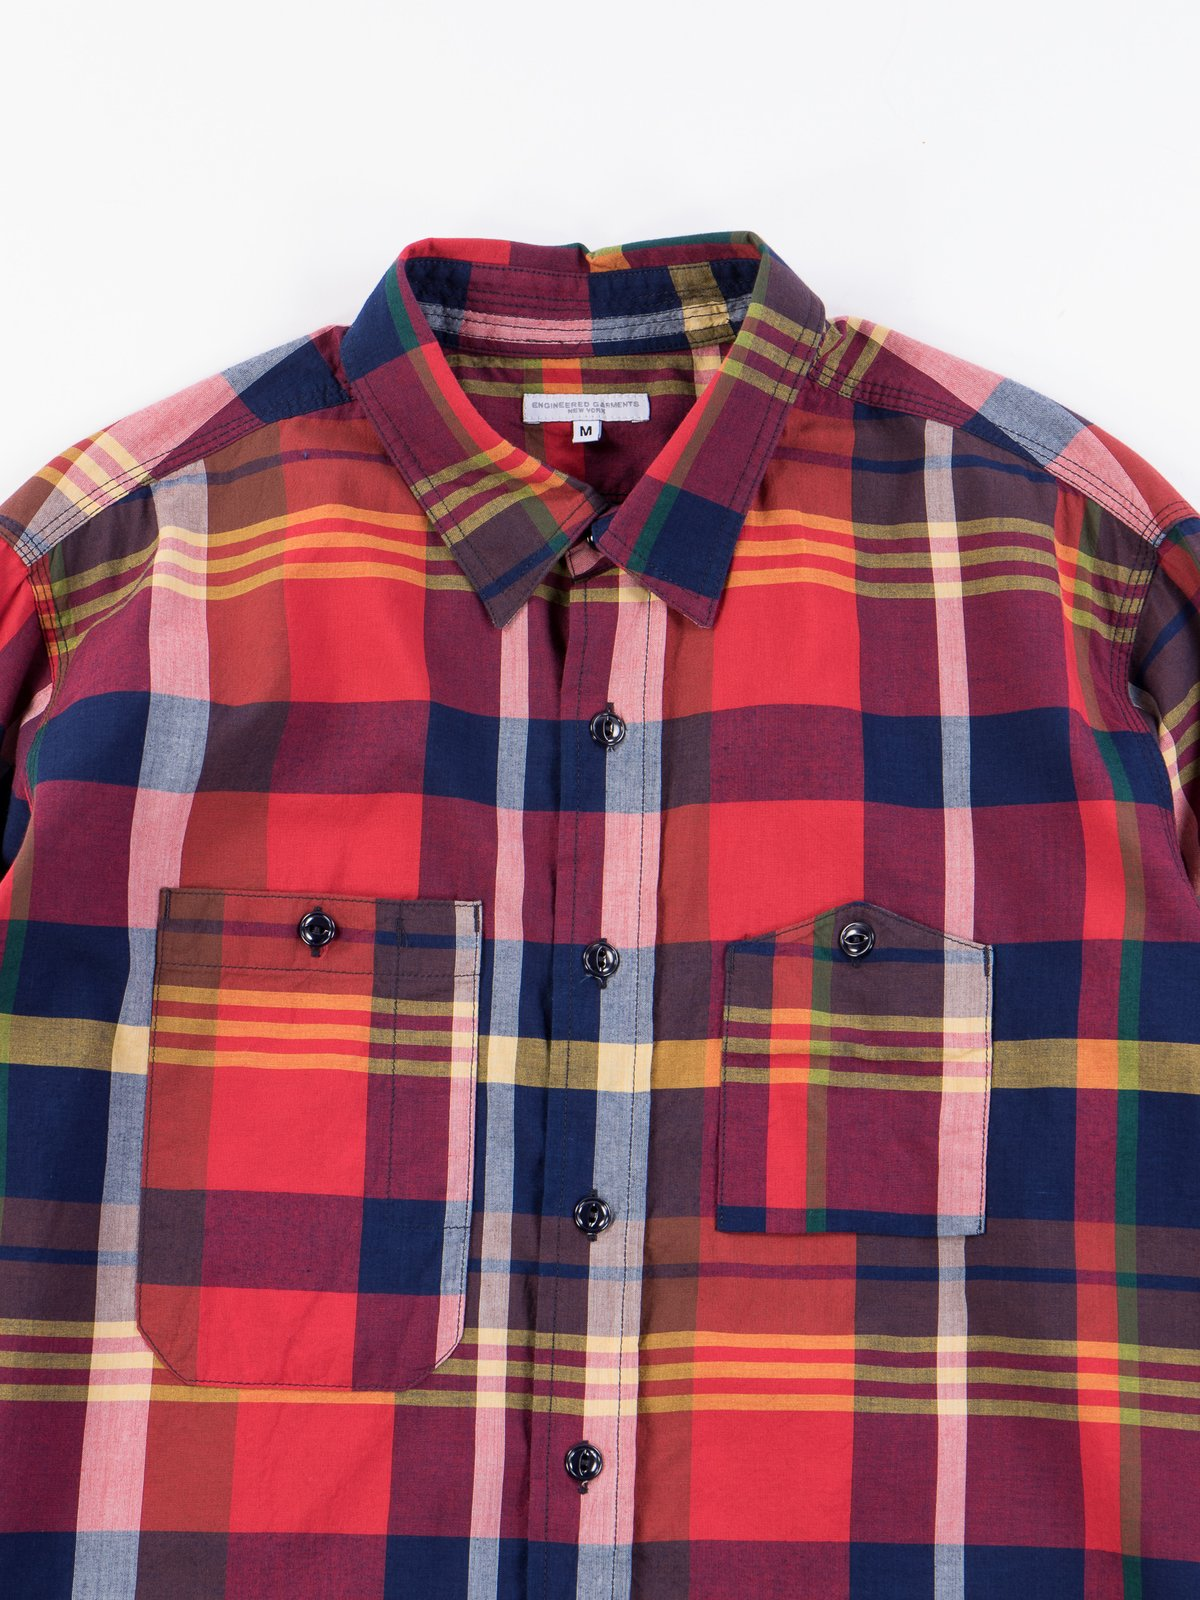 Red/Navy Cotton Big Madras Plaid Work Shirt - Image 3